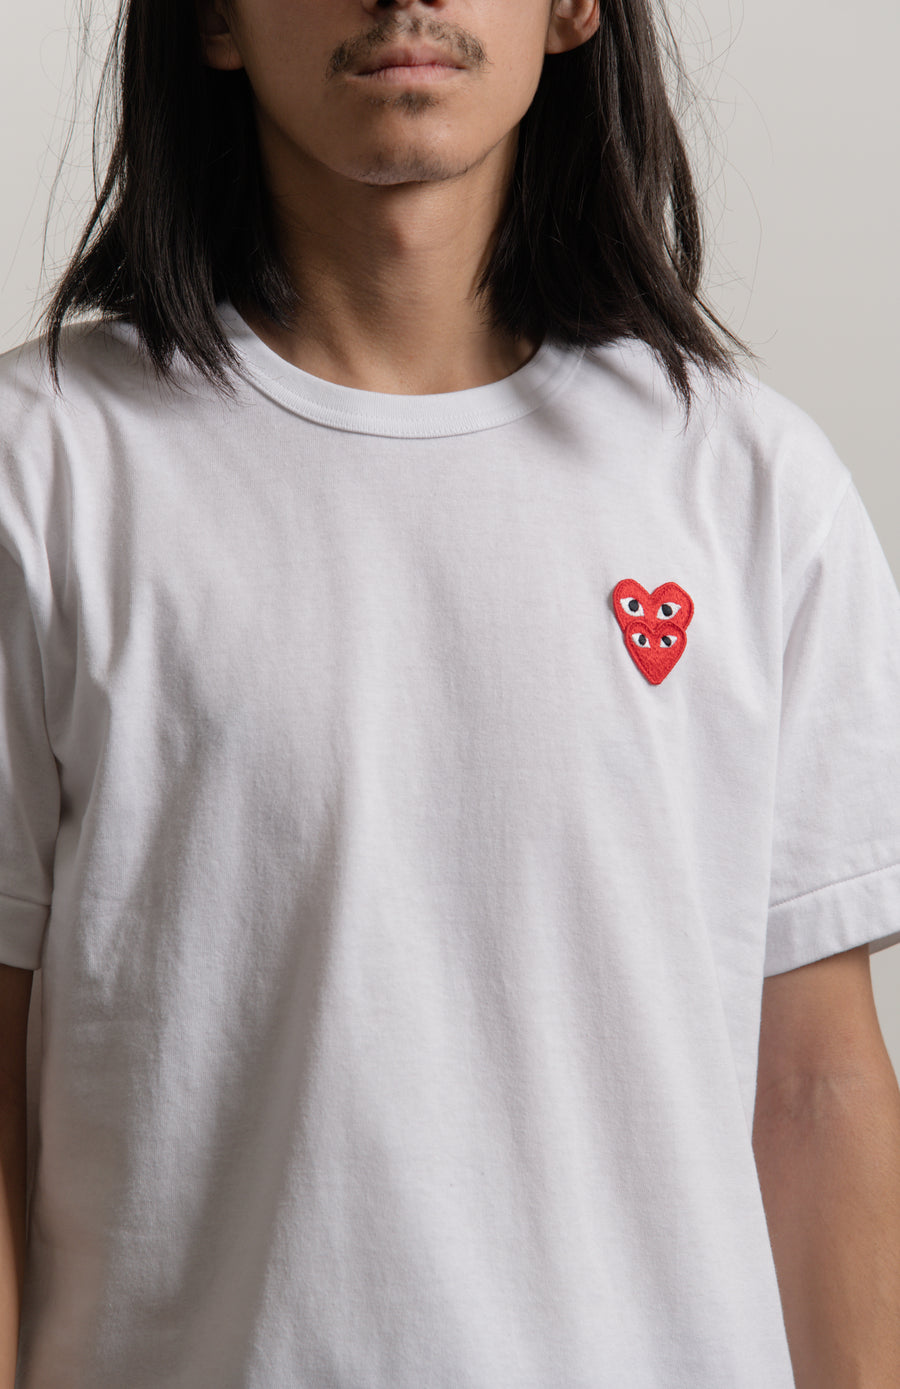 Layered Double Emblem Tee White/Red T288